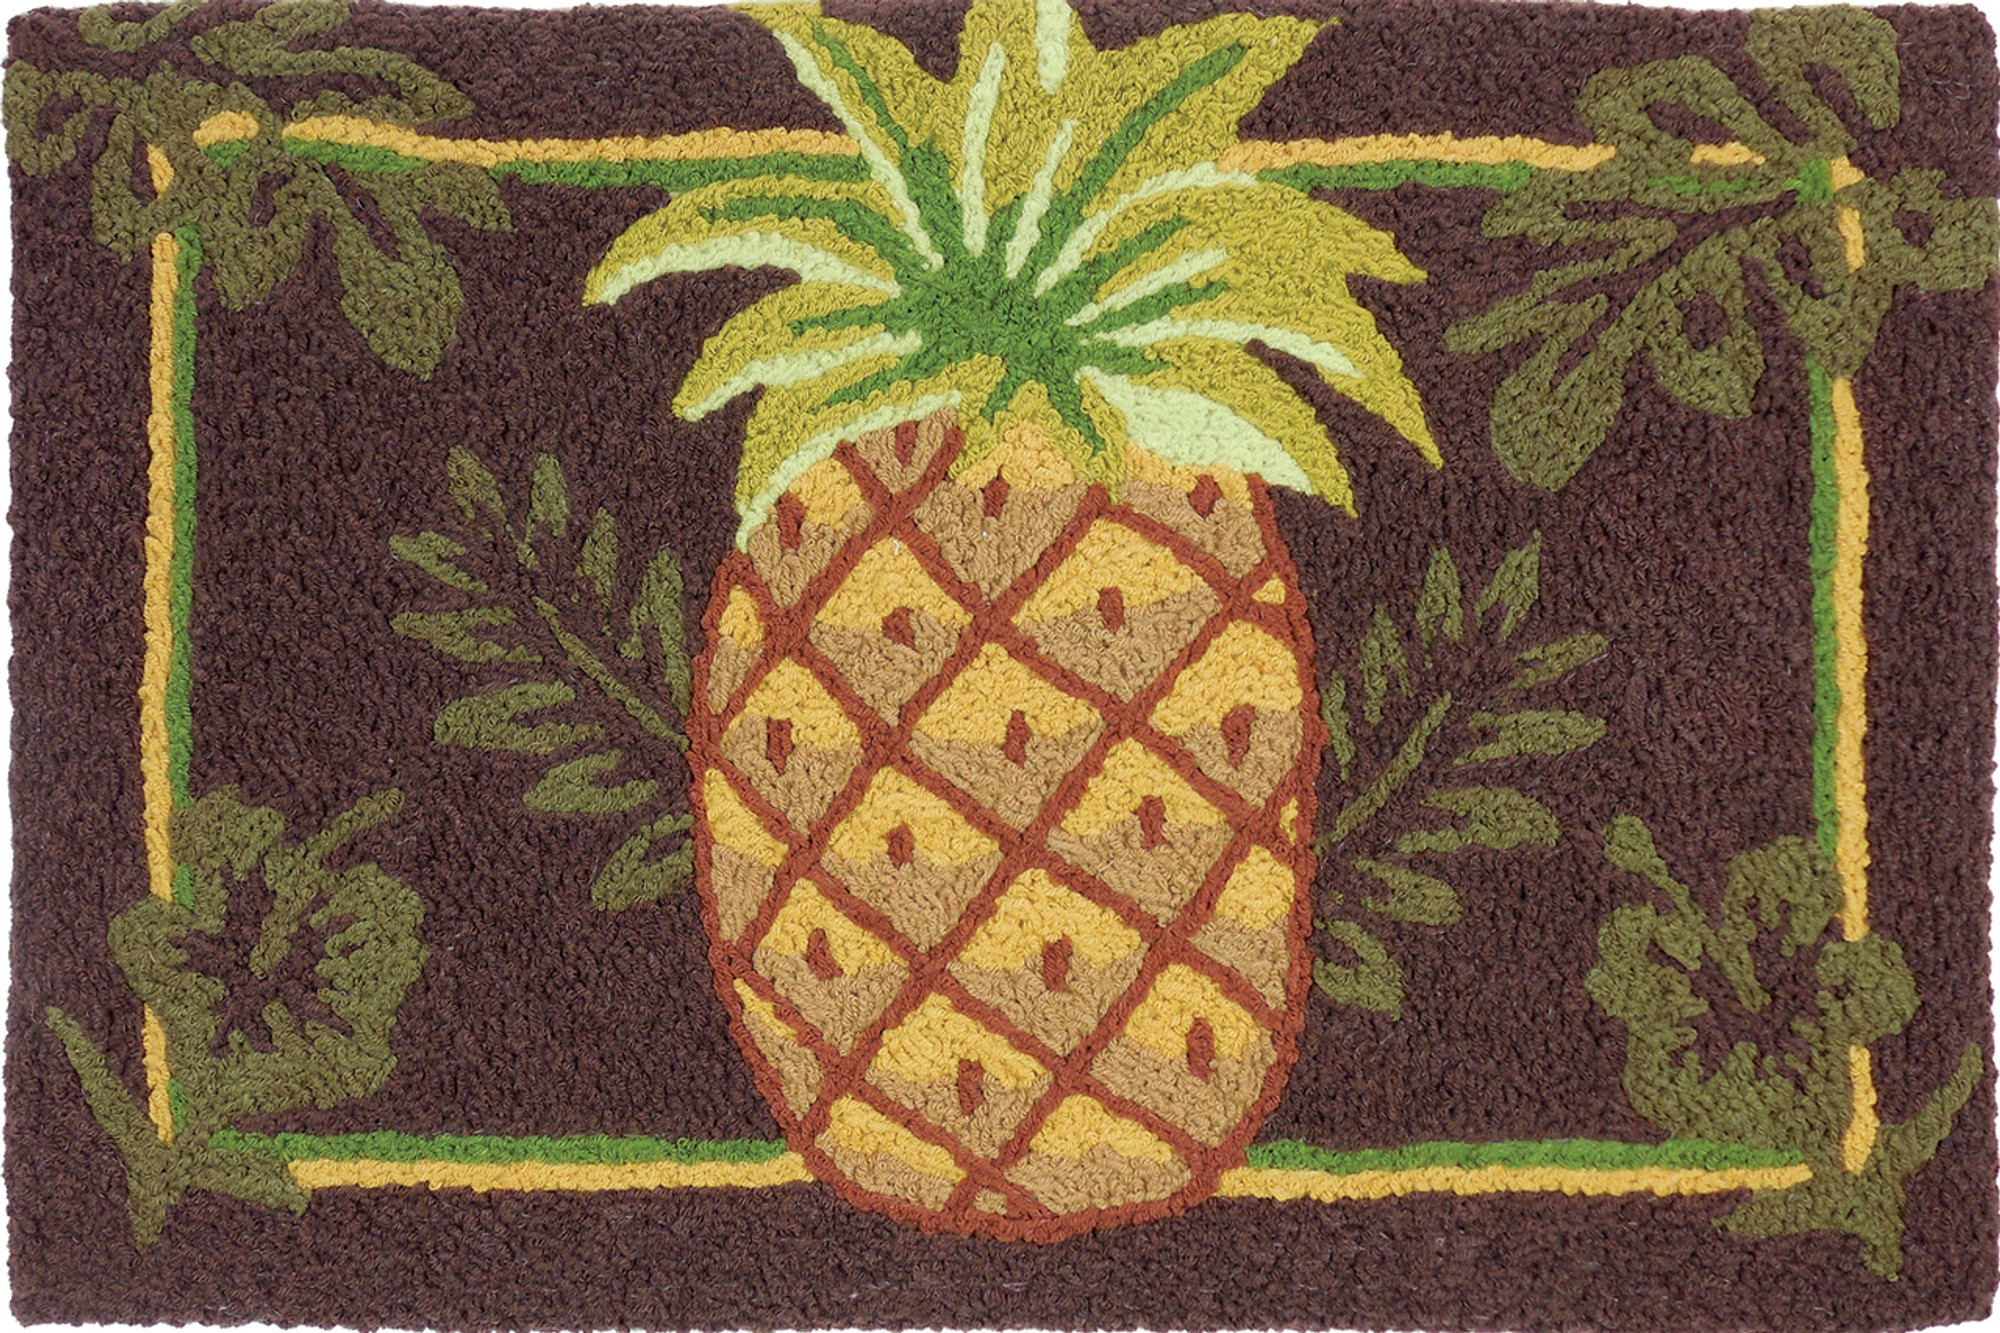 Welcoming Pineapple